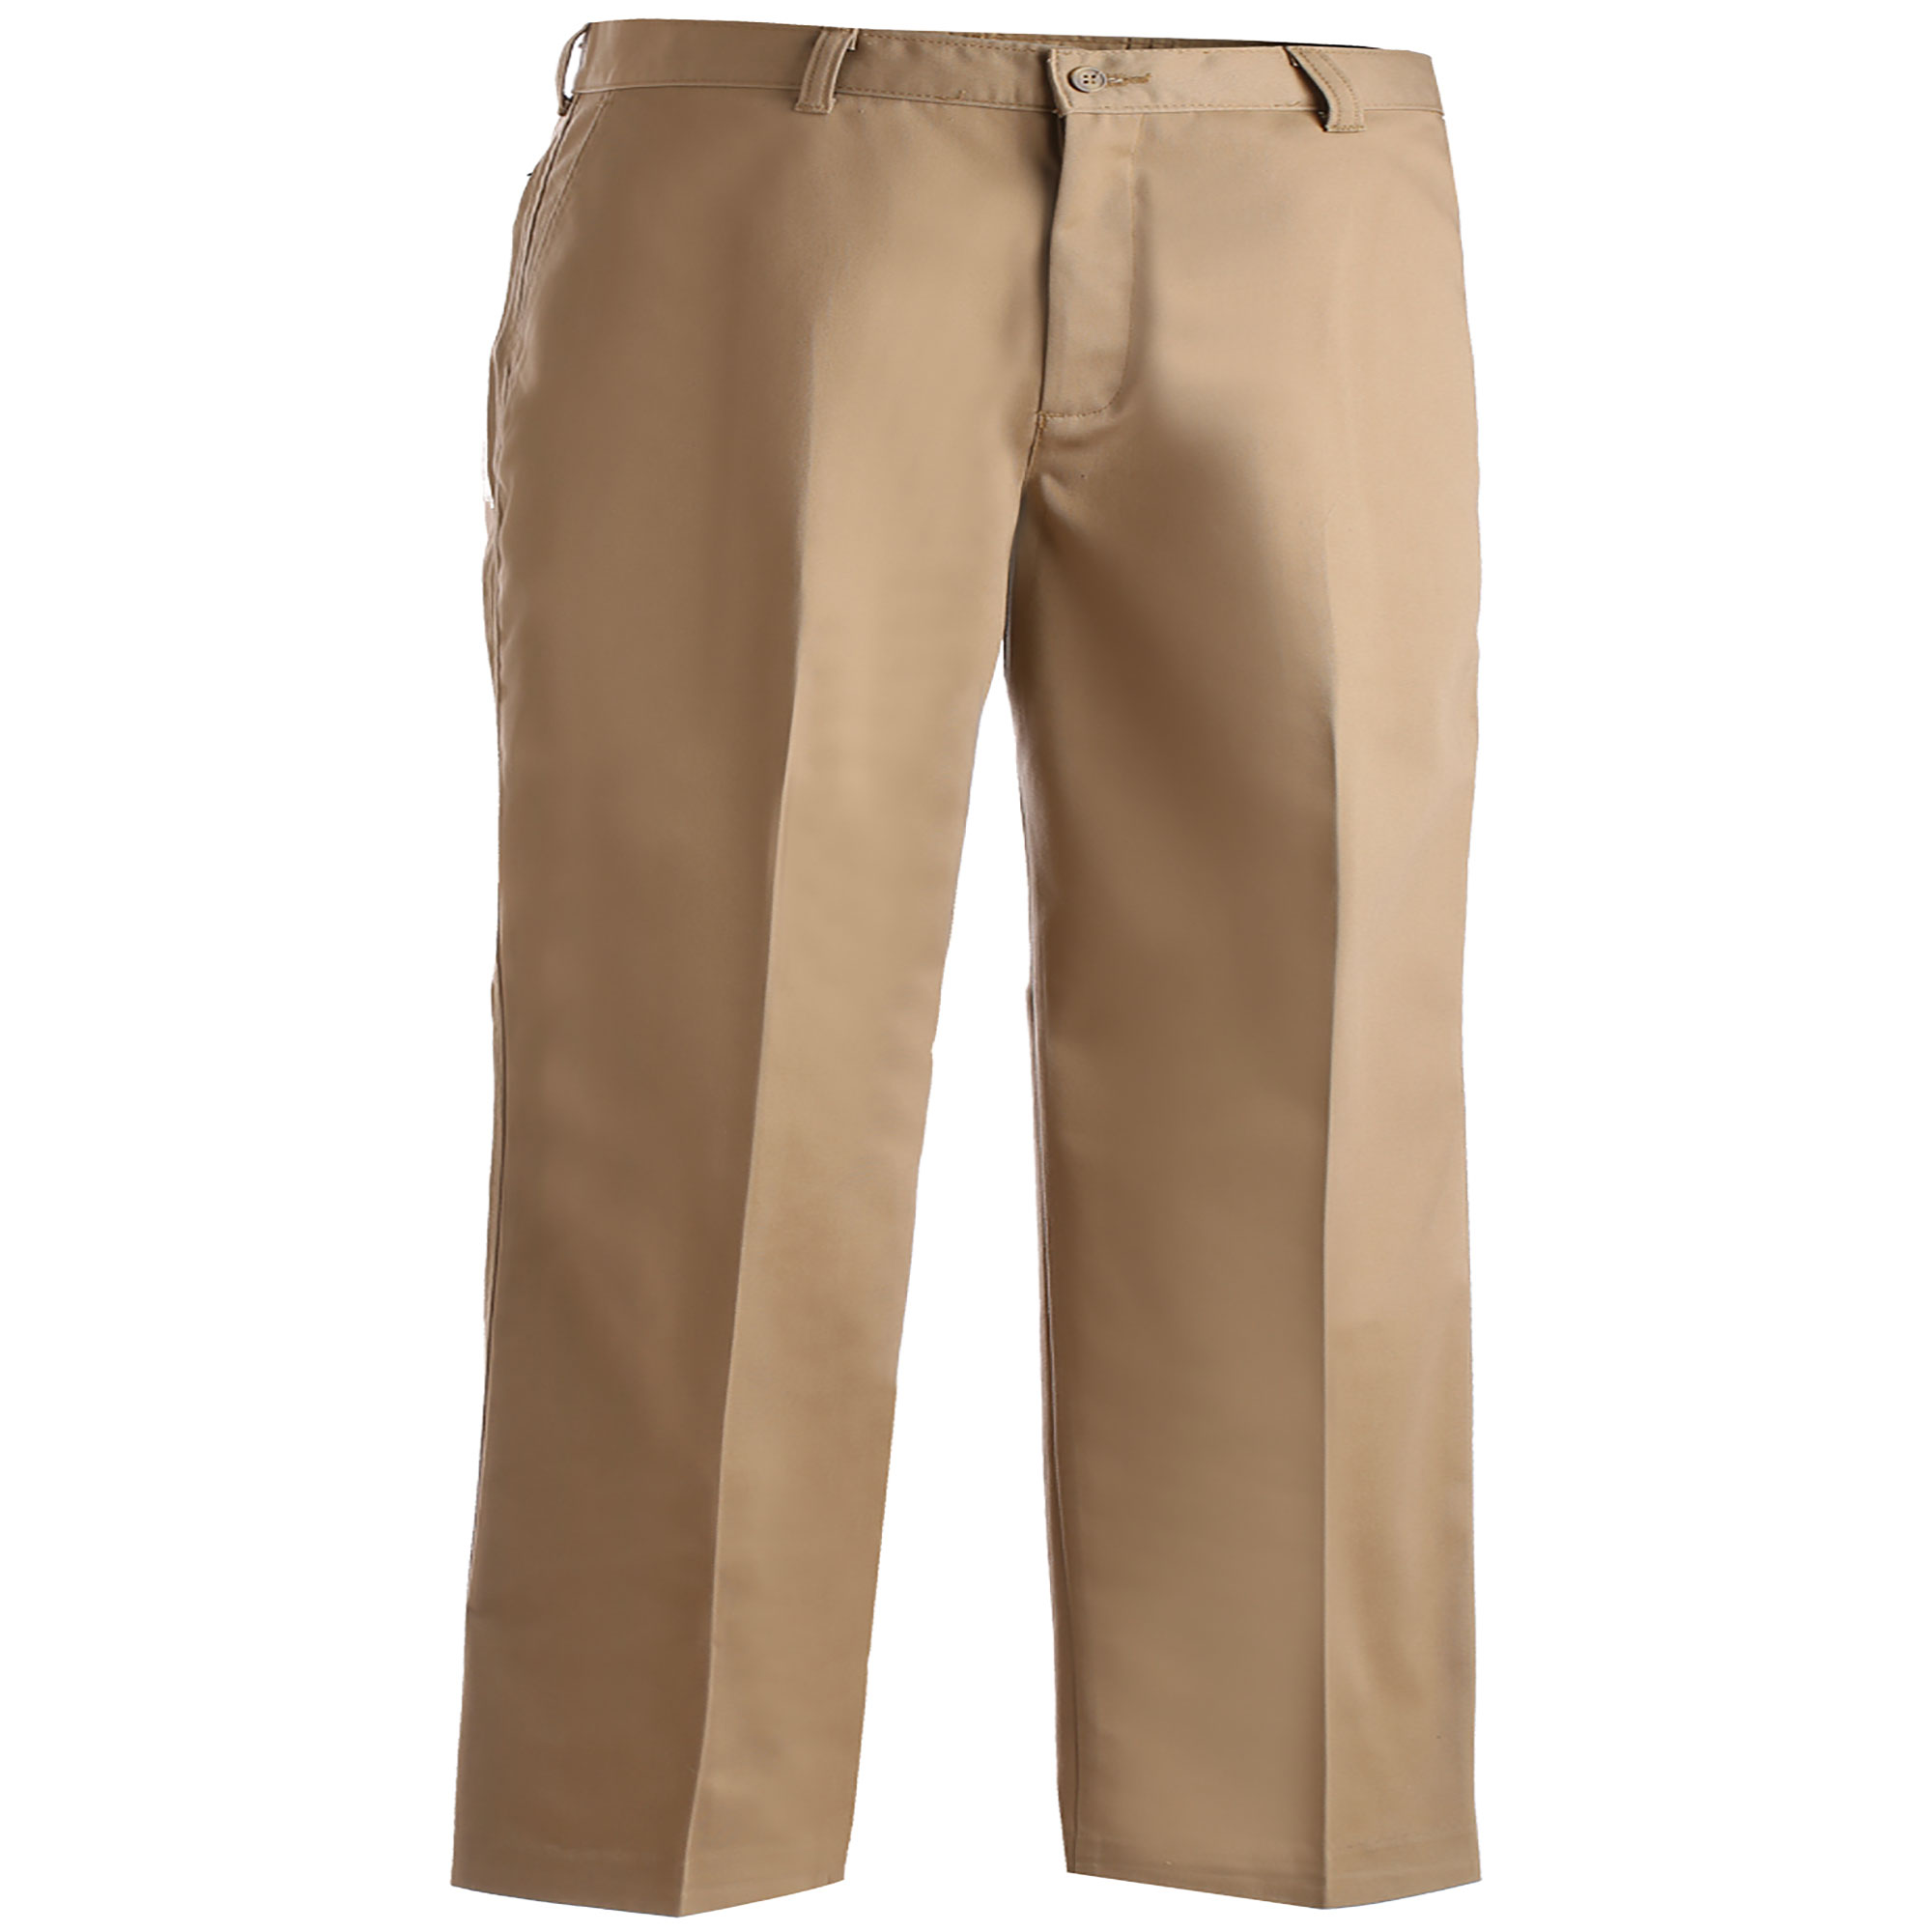 Edwards Garment Men's Casual Chino Blend Easy Fit Pant, S...